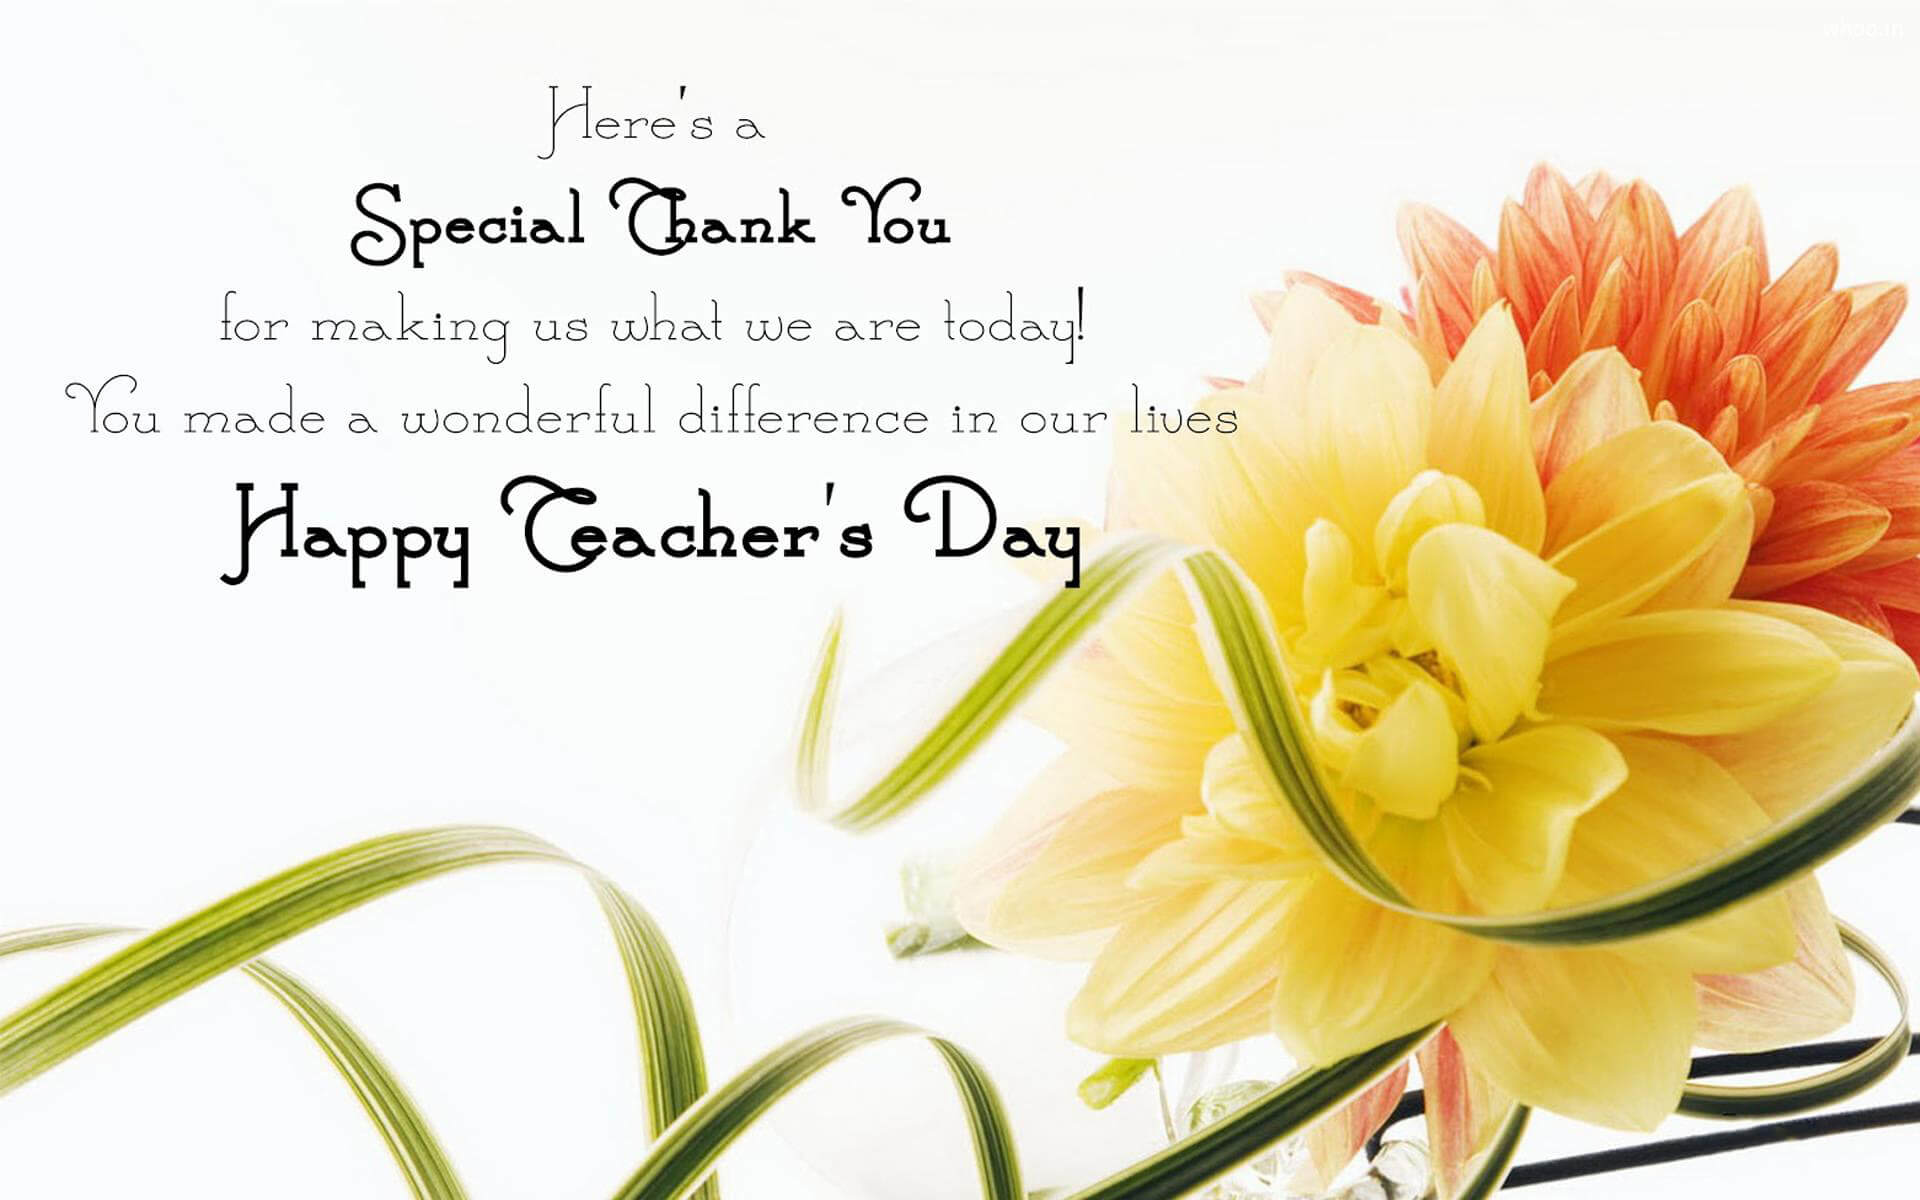 happy teachers day quotes wishes flowers hd wallpaper